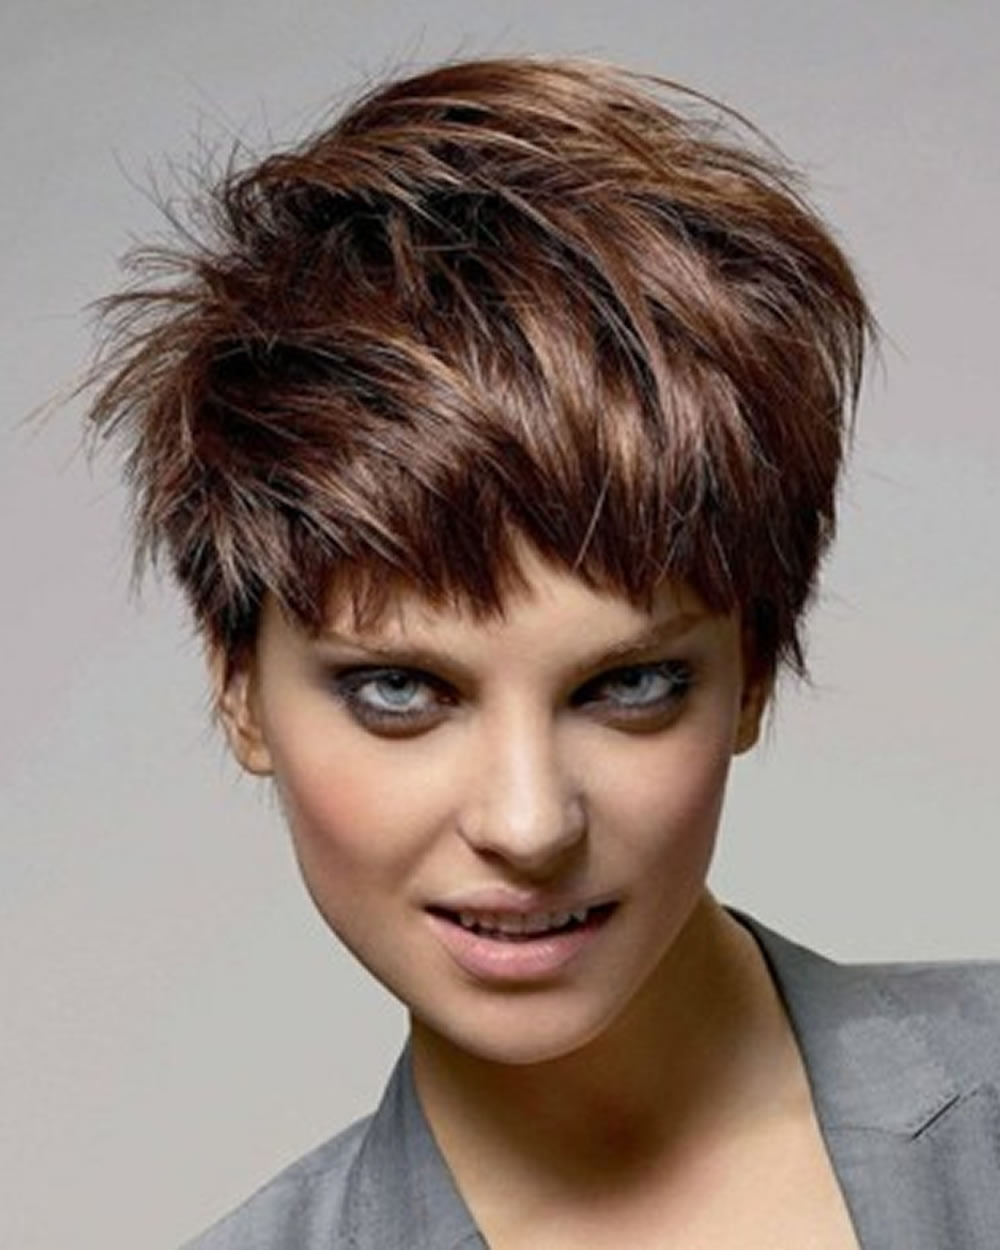 Pixie or Short Hairstyle Images & Short Hair Cut Inspirations for Summer 2018-2019